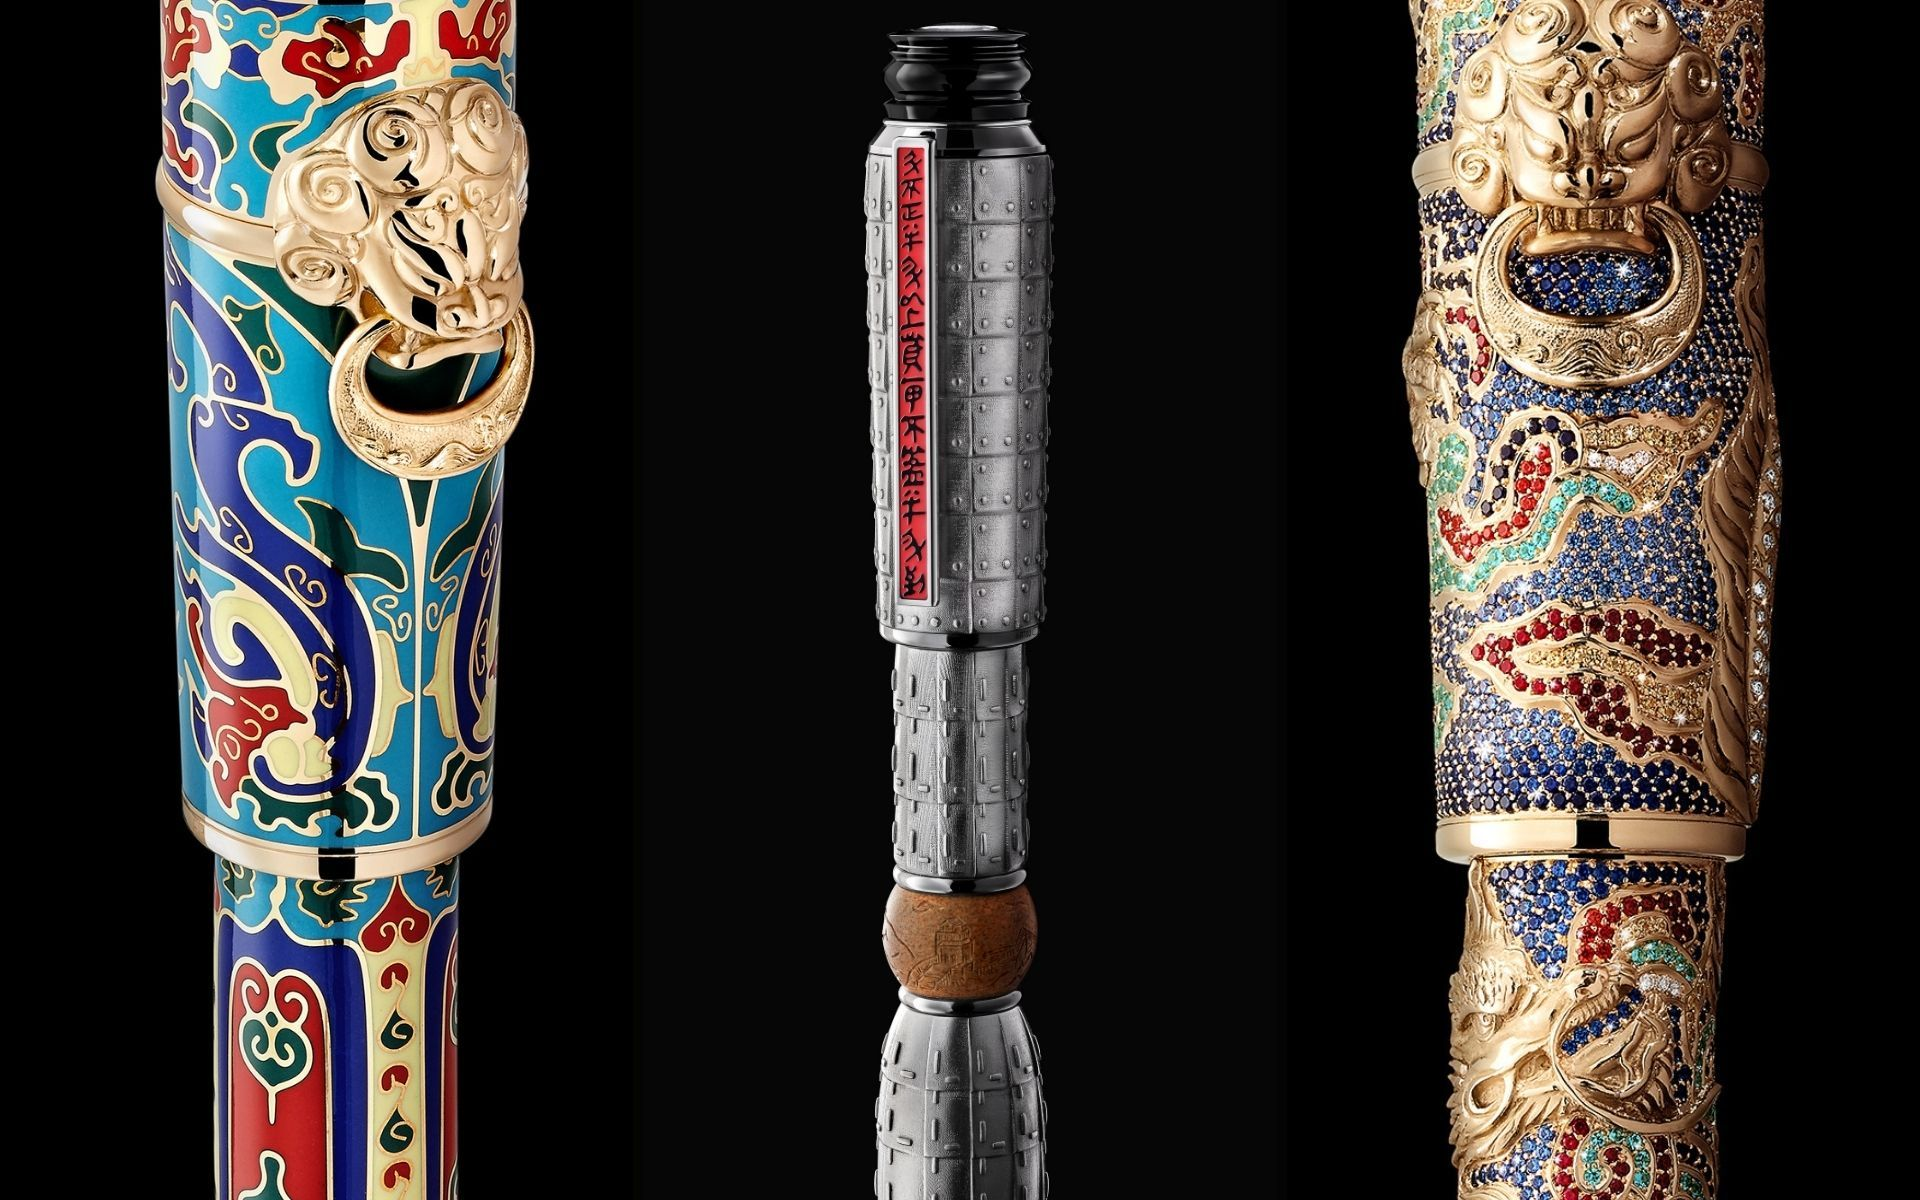 3 Montblanc Luxury Pens Inspired By The Great Wall Of China